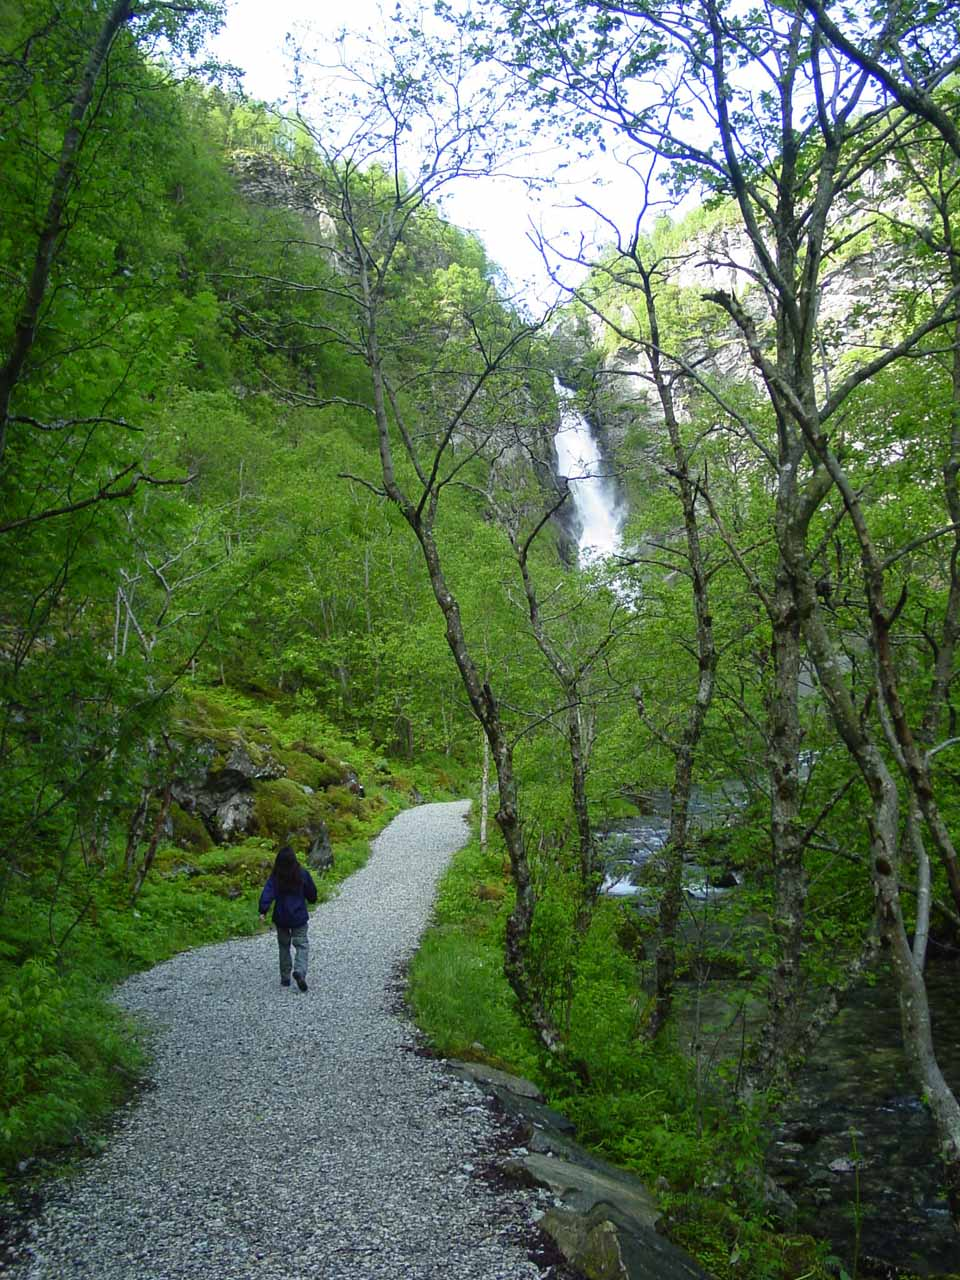 Julie walking quicker as she started to see Stalheimsfossen up ahead